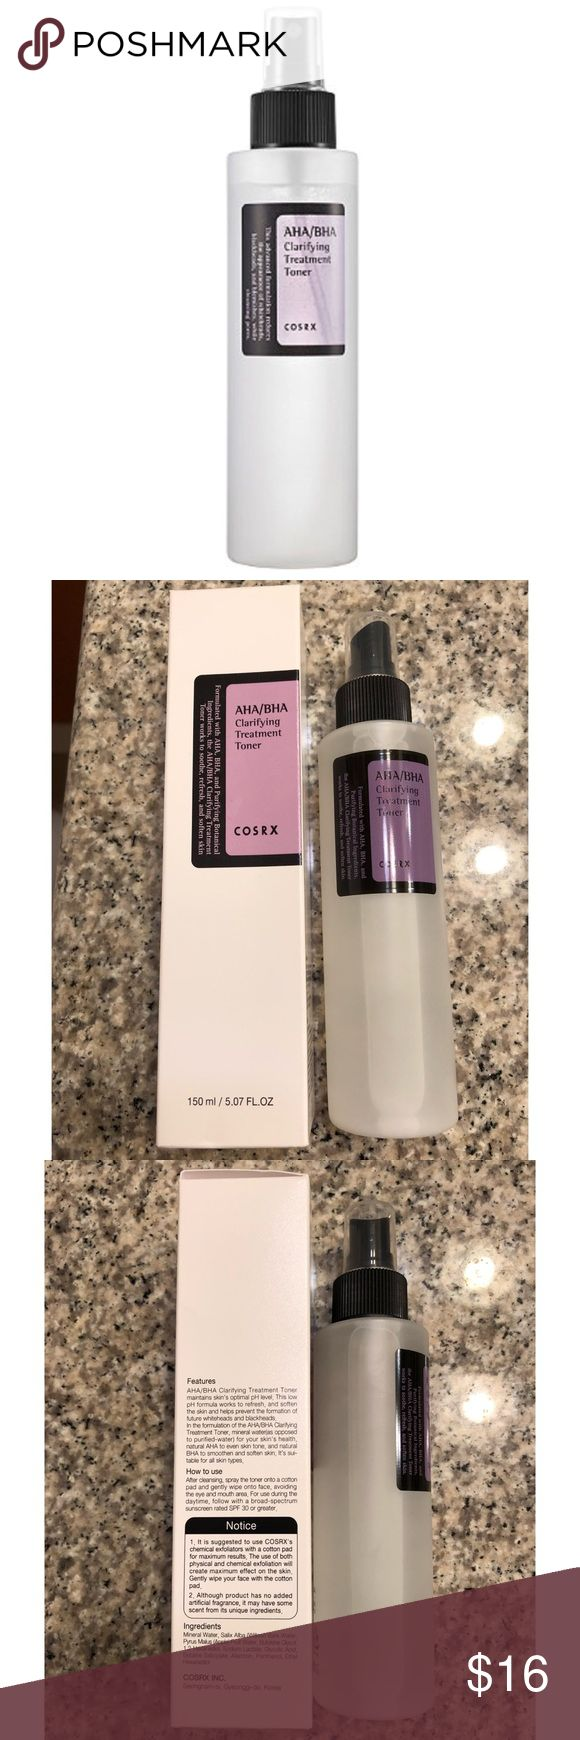 🆕 NIB COSRX AHA/BHA Clarifying Treatment Toner NEW, never used COSRX AHA/BHA Clarifying Treatment Toner. Purchased from Ulta and never used!  • Exfoliating fluid that effectively eliminates flakes and dull skin cells while preventing blackheads and whiteheads from forming • Infused with natural acne-fighting acids, controls excess oil and sebum while nourishing and hydrating depleted skin with essential vitamins  🚫NO trades 💋Free sample with purchase! COSRX Makeup